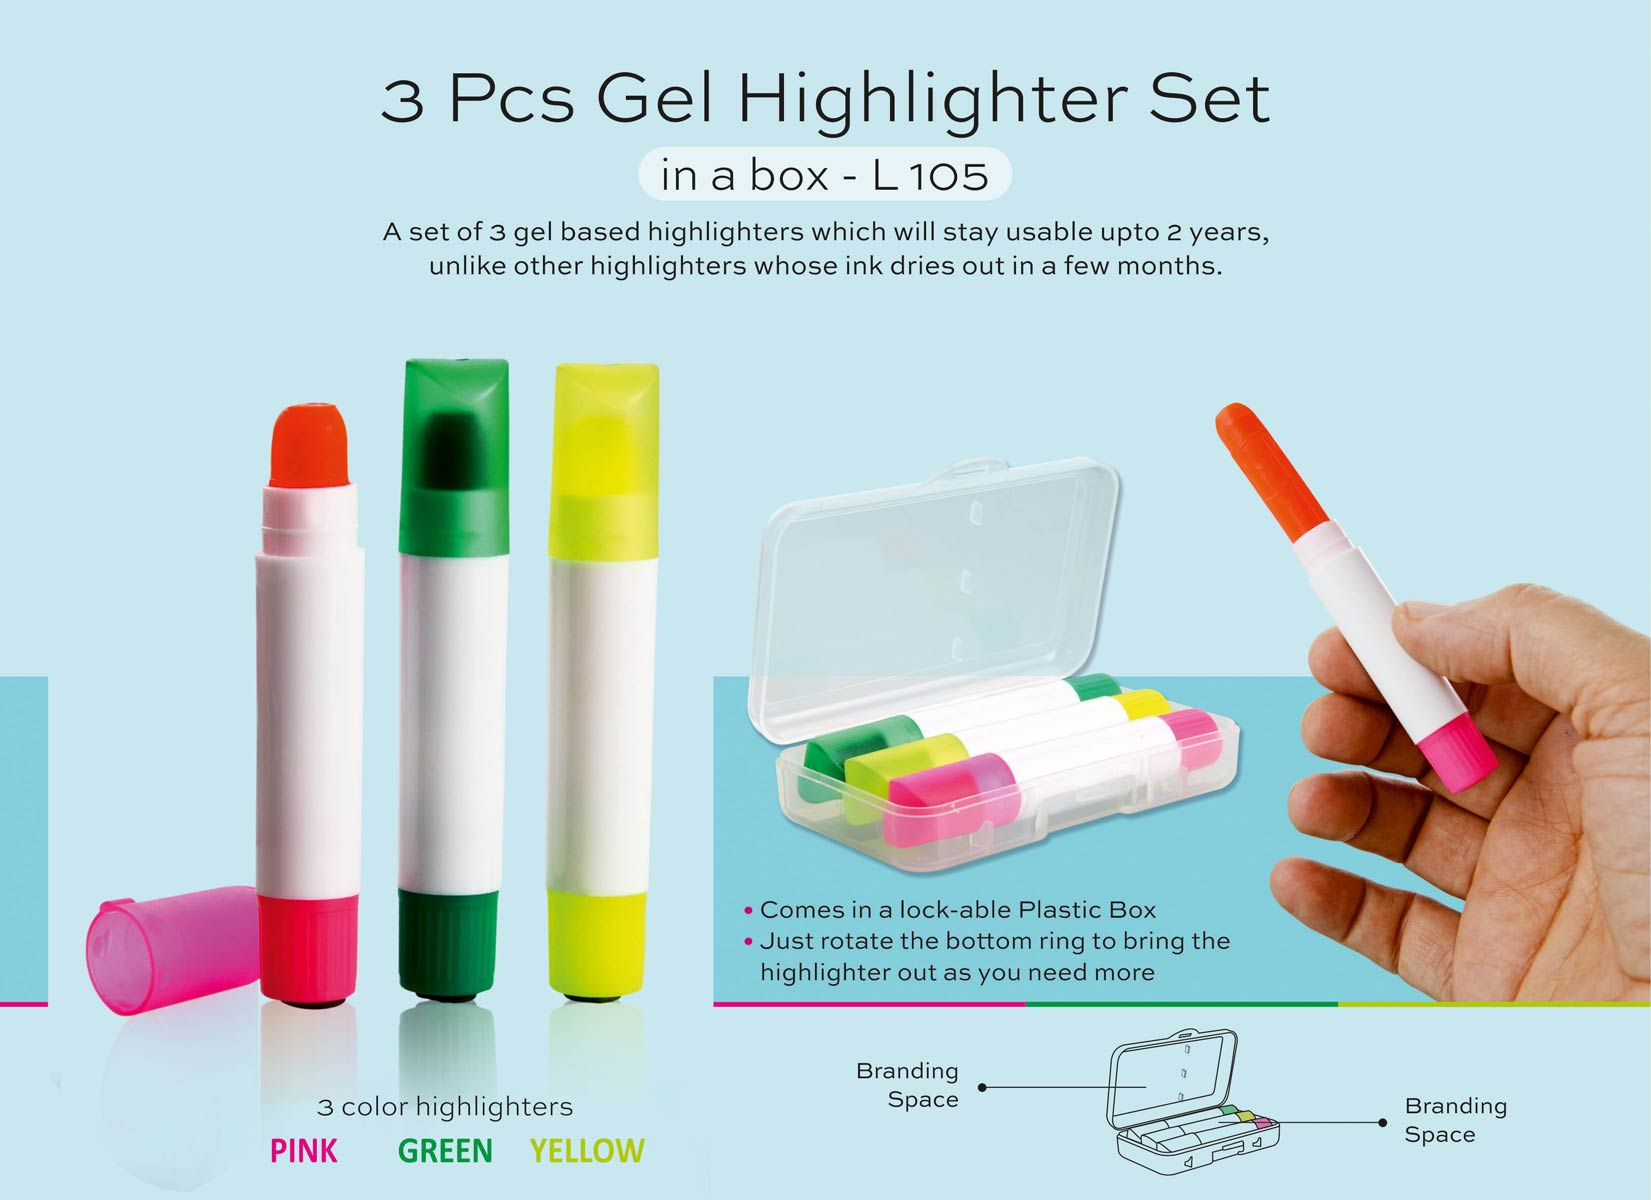 L105 - 3 pc gel highlighter set in a box